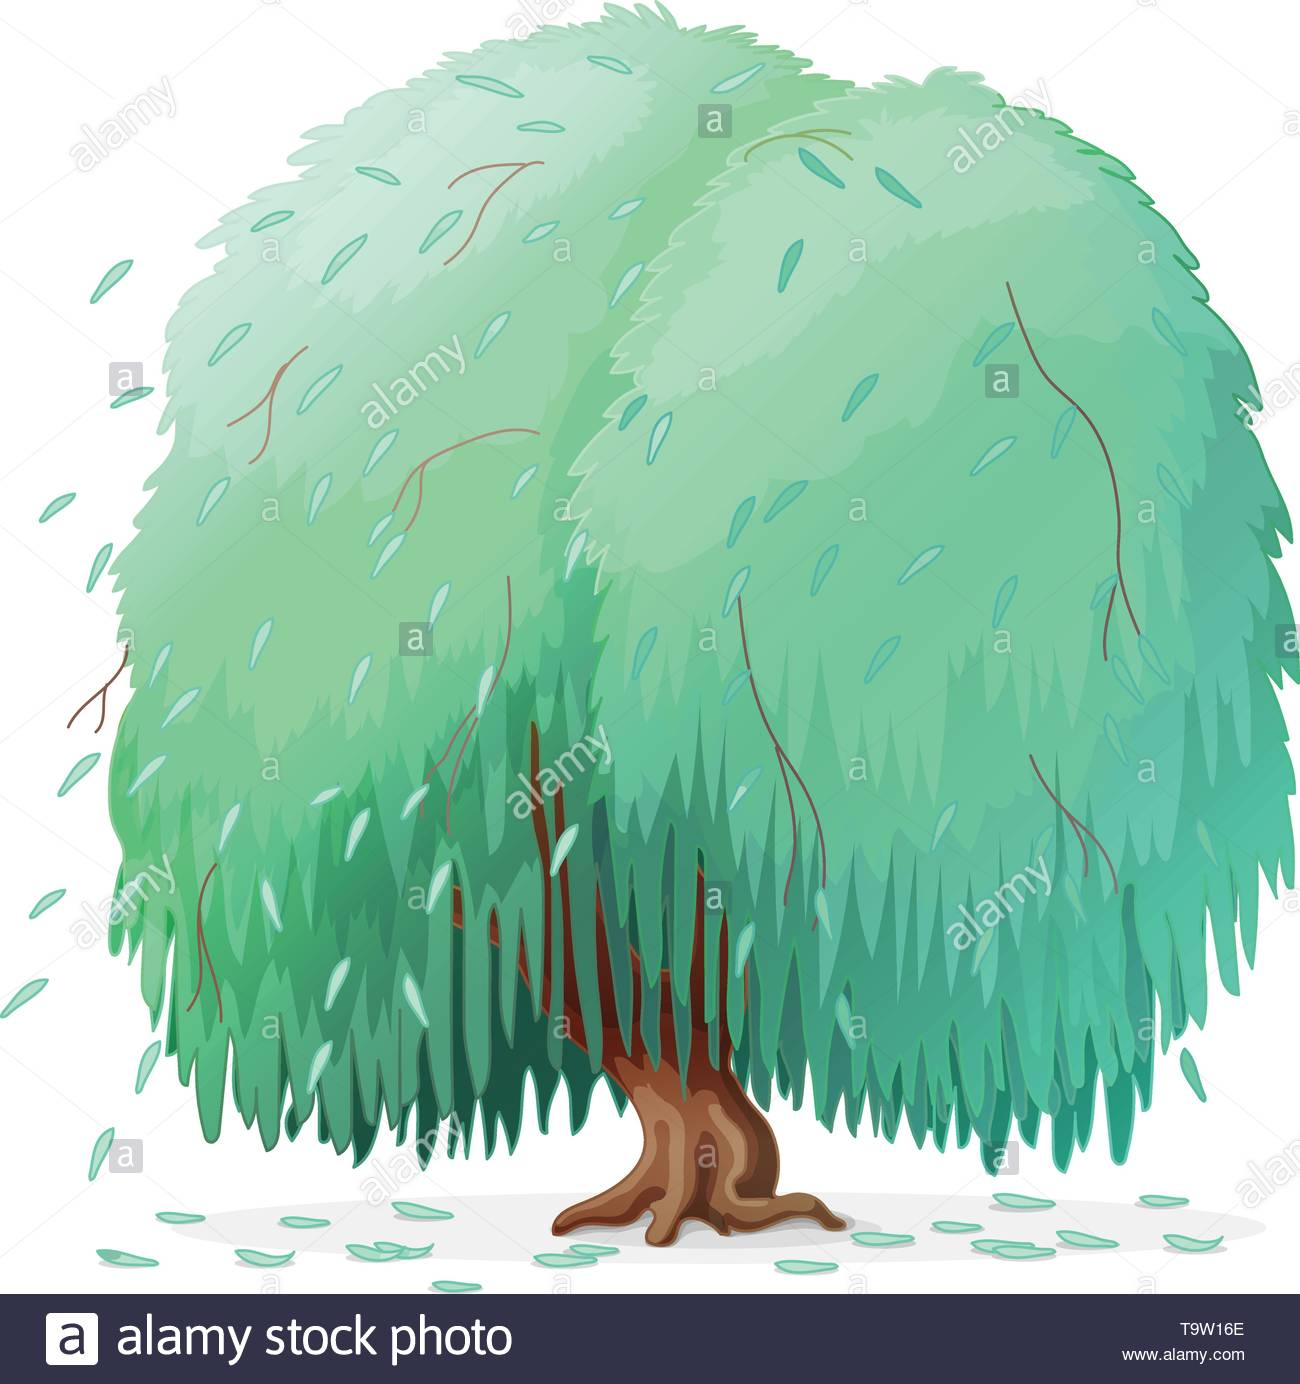 vector cartoon plants clipart. Weeping willow tree Stock Vector Art.